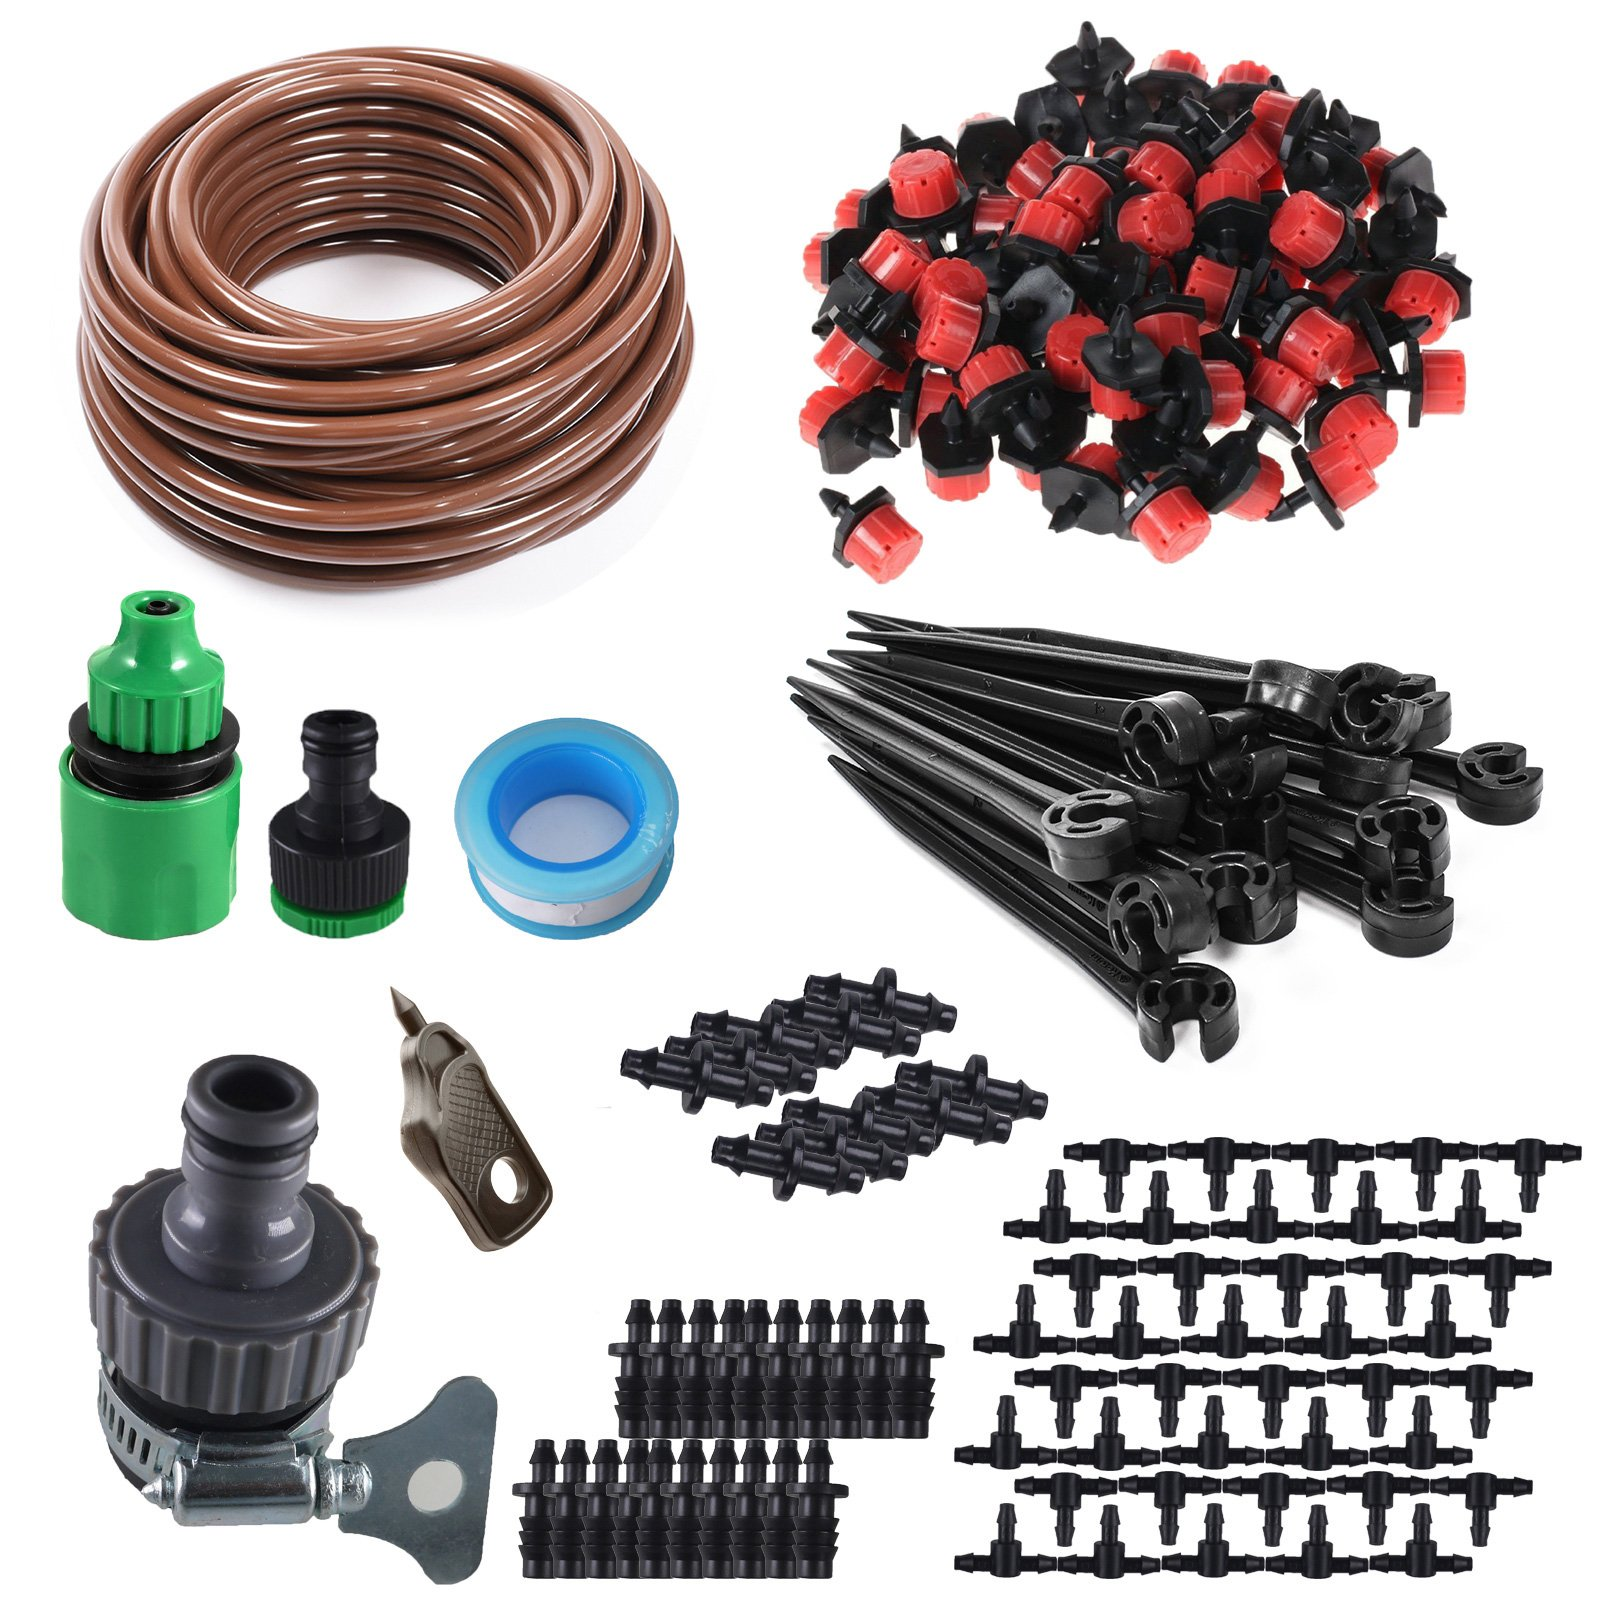 KORAM 100ft 1/4'' Blank Distribution Tubing Irrigation Gardener's Greenhouse Plant Cooling Suite Watering Drip Repair and Expansion Kit Accessories Include Universal Spigot Connector IR-2F